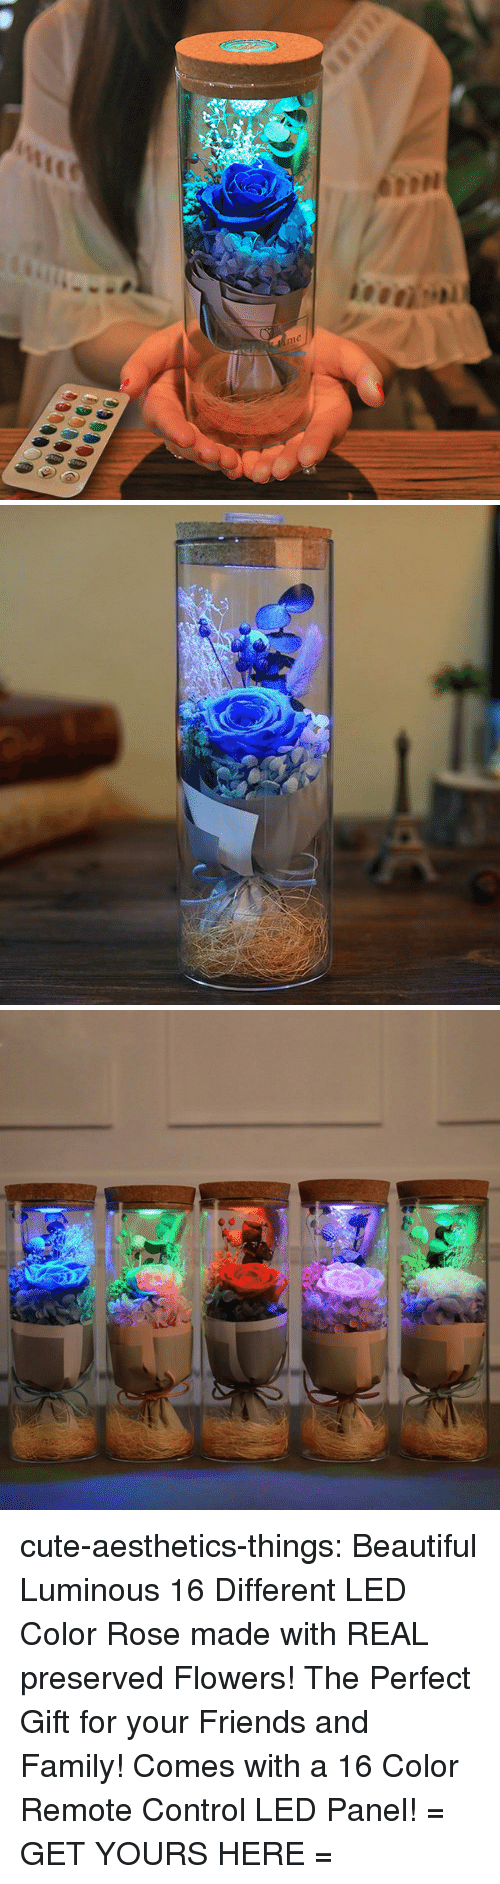 Beautiful, Cute, and Family: me cute-aesthetics-things:  Beautiful Luminous 16 Different LED Color Rose made with REAL preserved Flowers! The Perfect Gift for your Friends and Family! Comes with a 16 Color Remote Control LED Panel! = GET YOURS HERE =